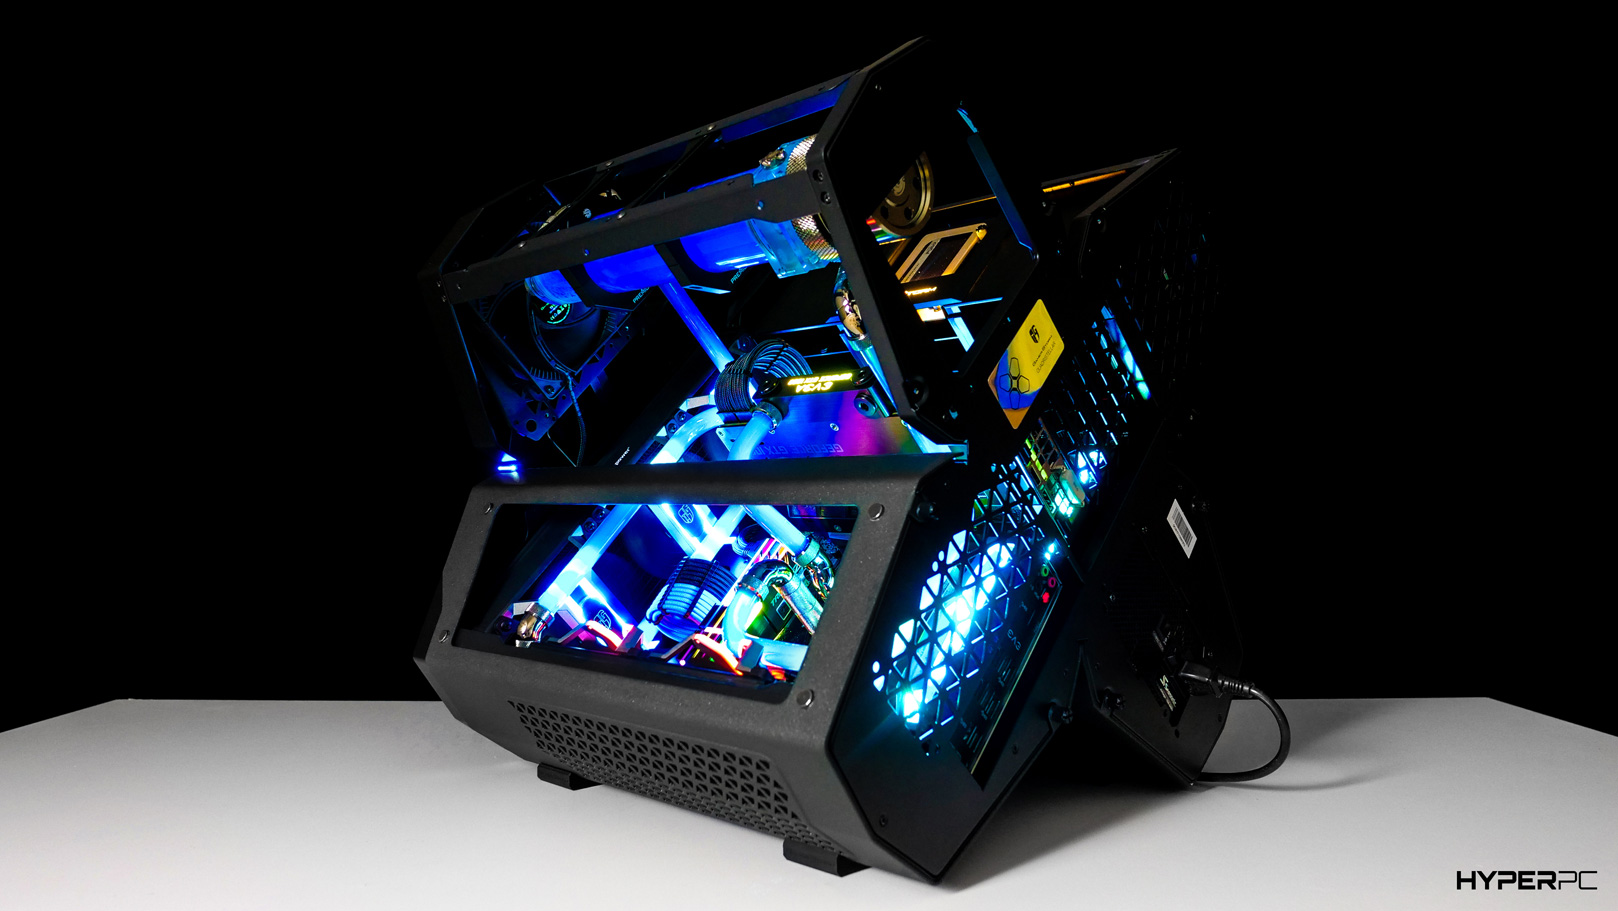 https://hyperpc.ru/images/product/special/exclusive/hyperpc_game_storm/gallery/deepcool_quadstellar_rgb_photo_04.jpg